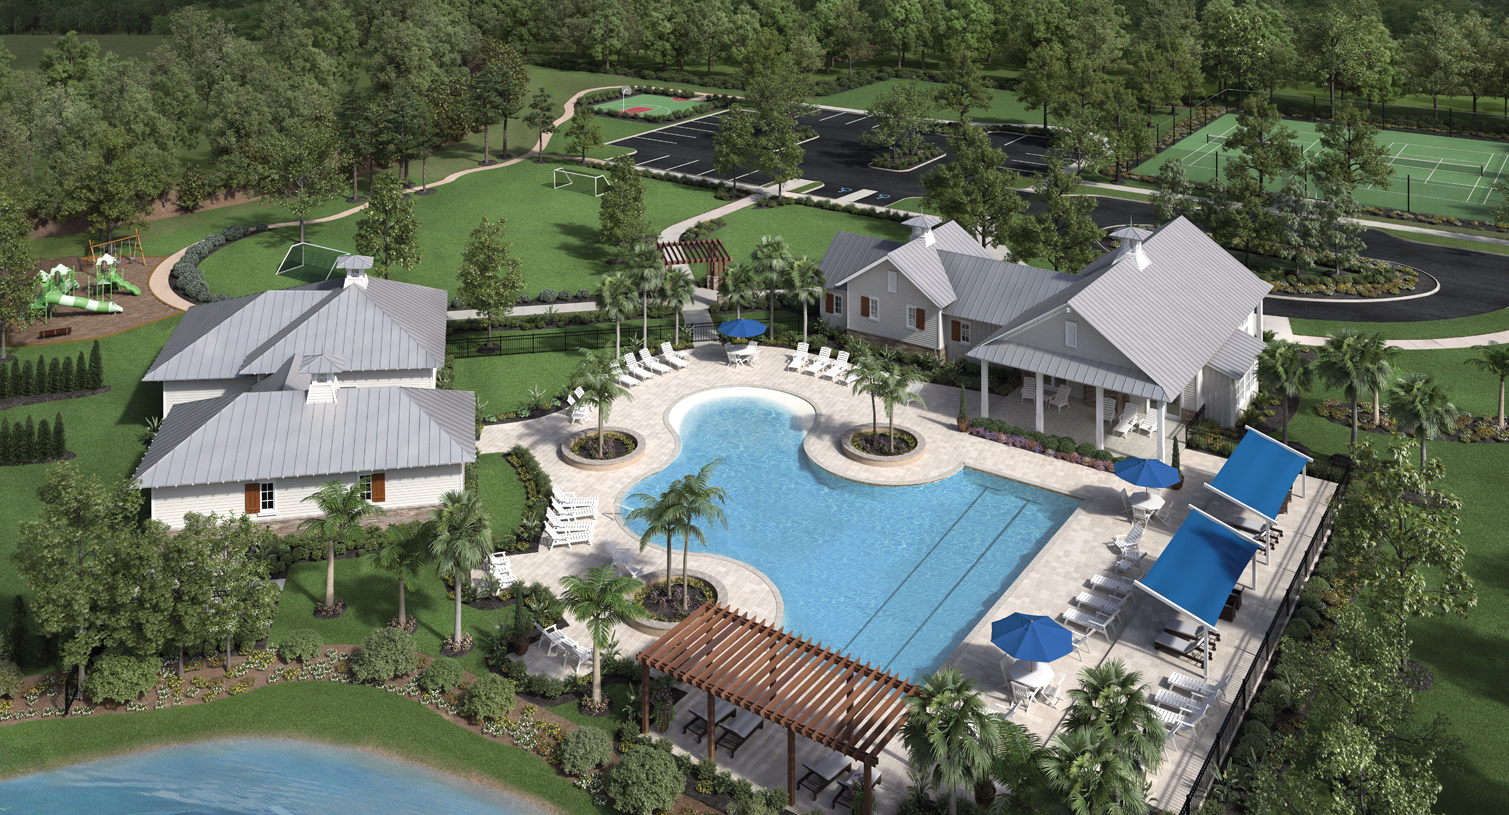 St johns fl new homes master planned community julington lakes - Rectangle pool aerial view ...